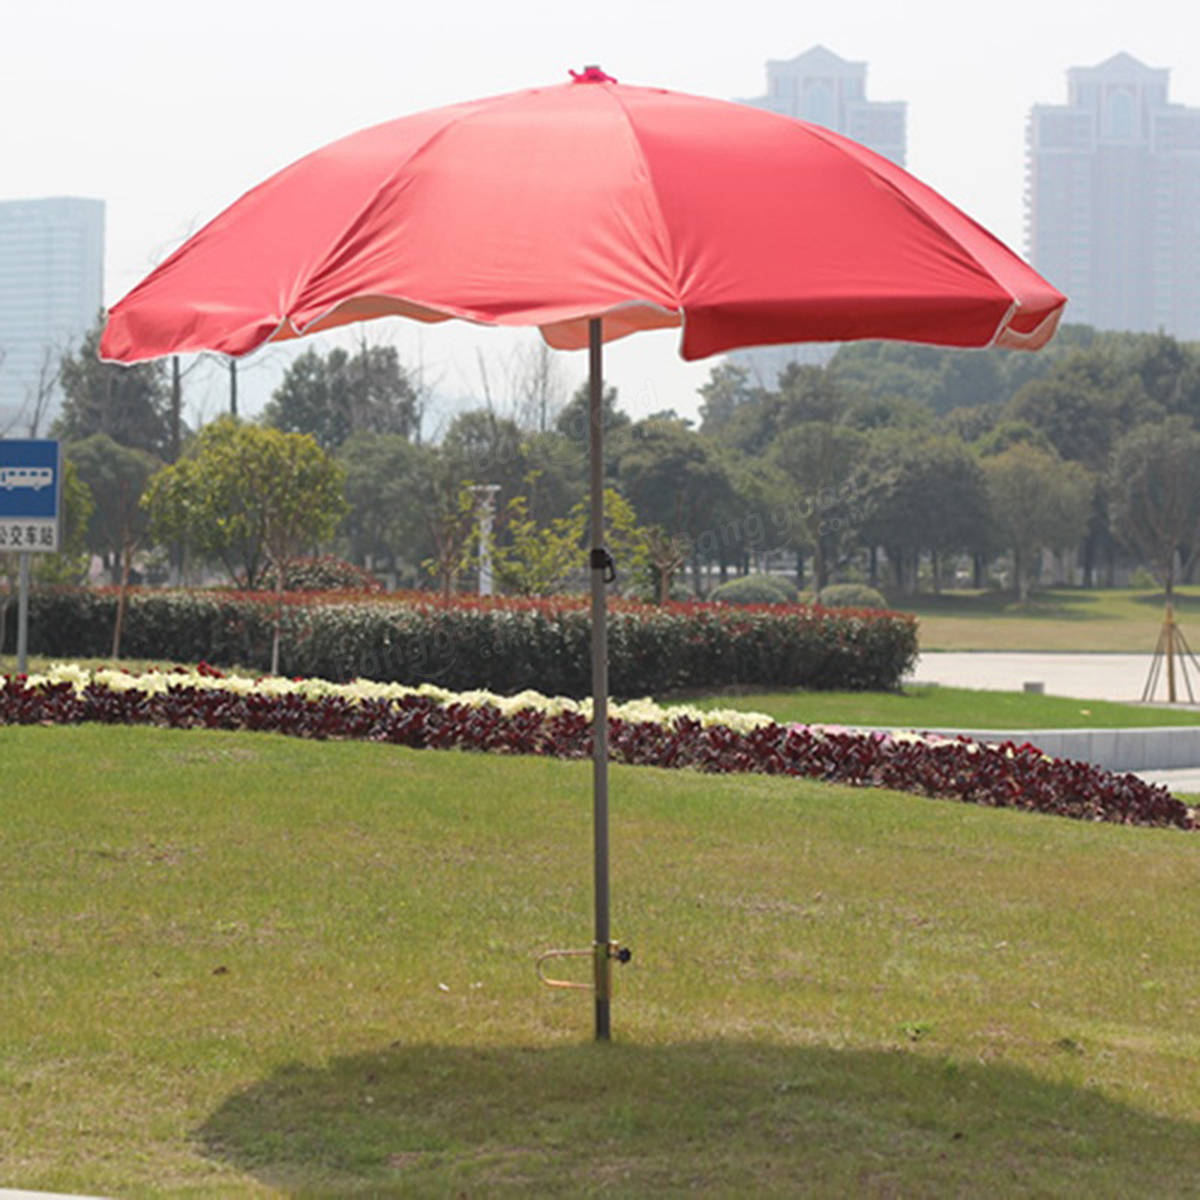 Umbrella Stand For Garden: 40cm Iron Umbrella Stand Pole Holder For Beach Garden